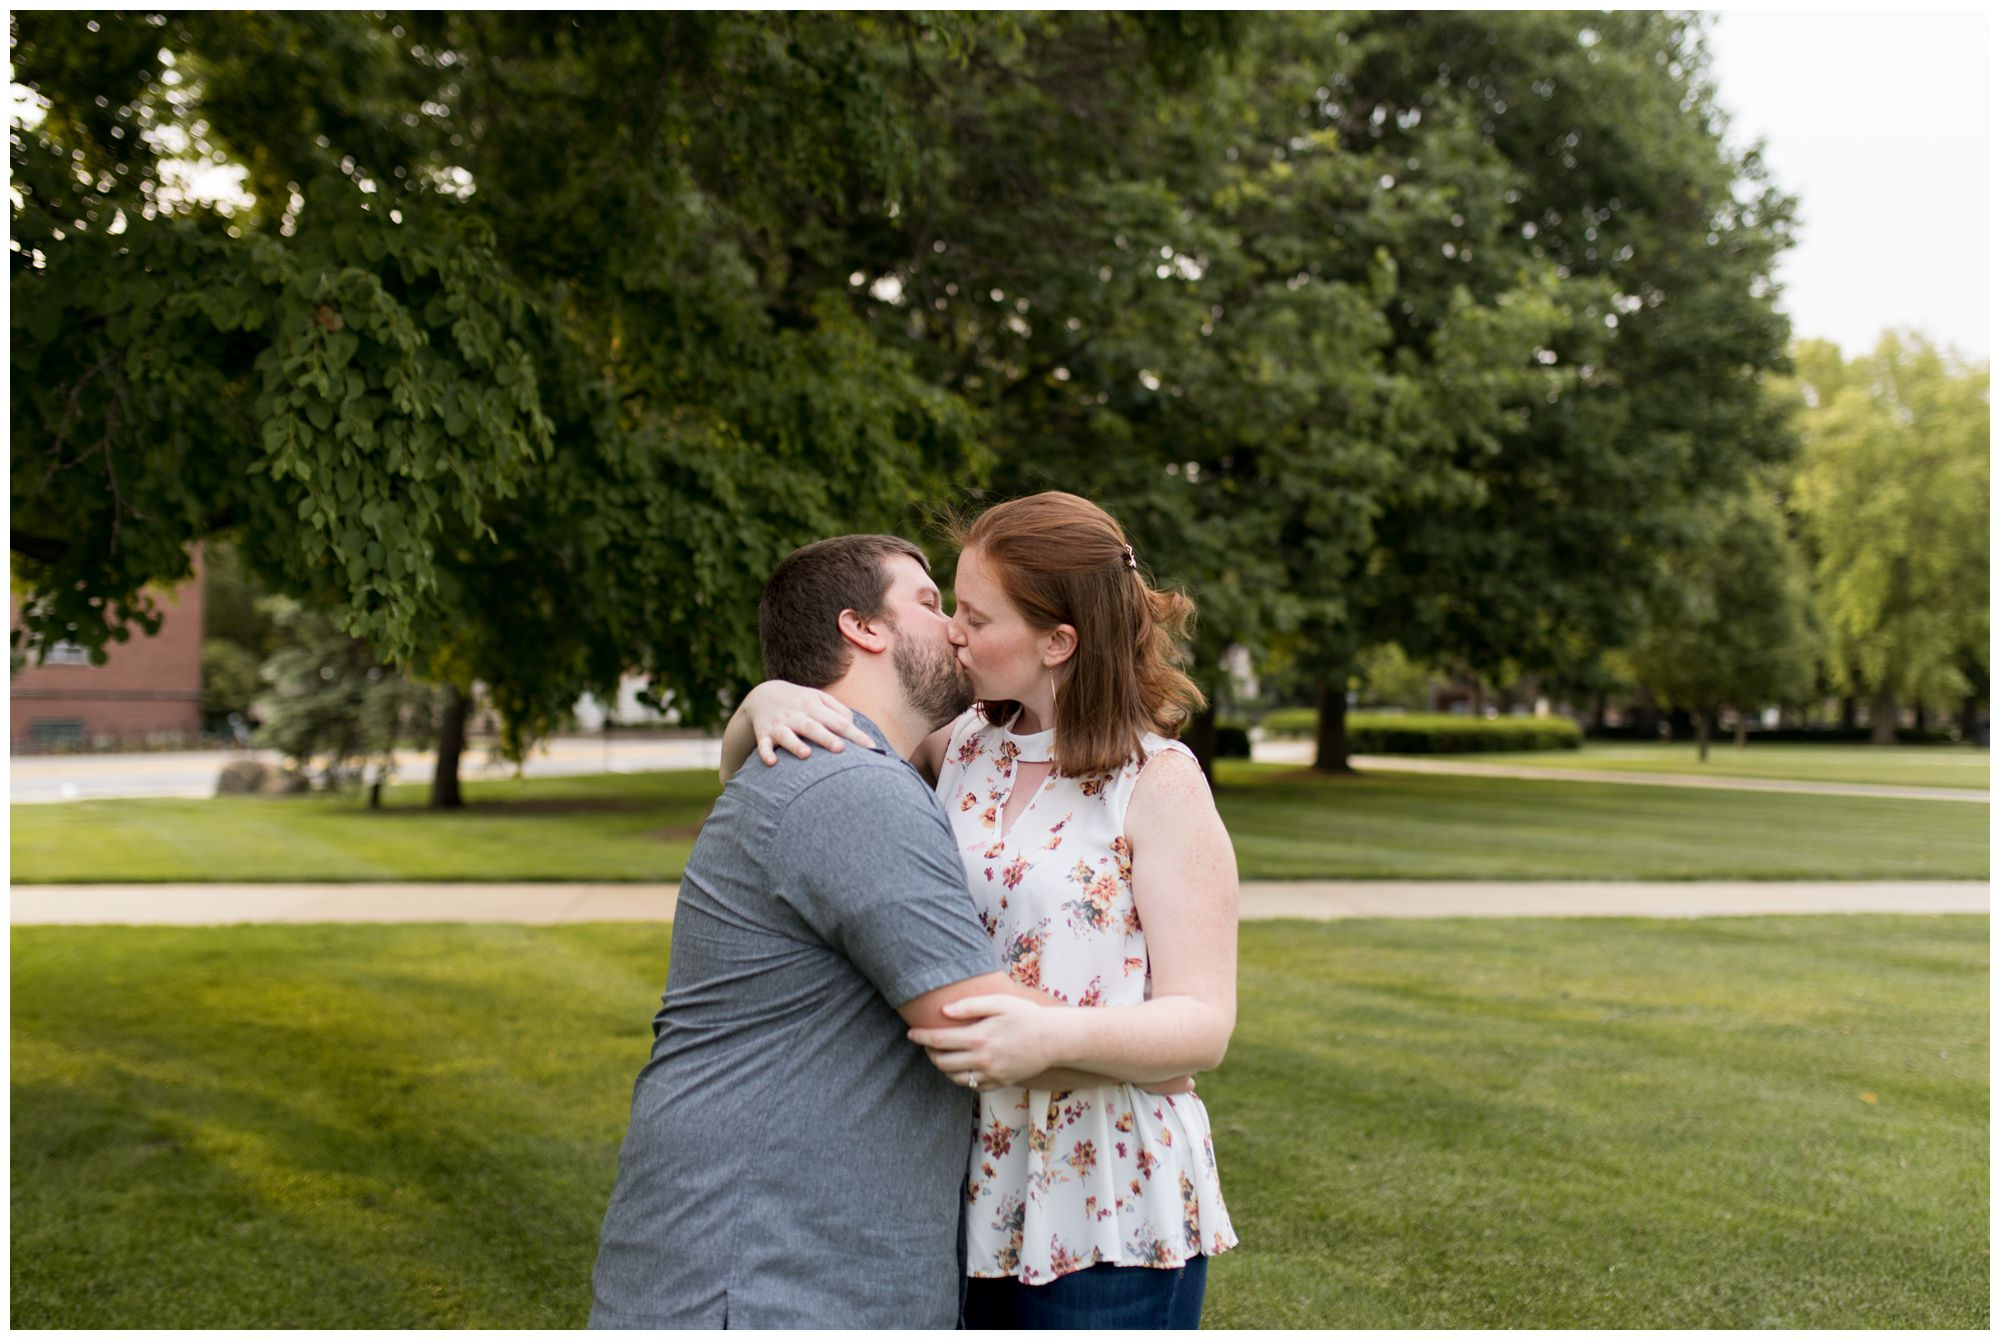 couple kisses during engagement session at Purdue University in West Lafayette, Indiana